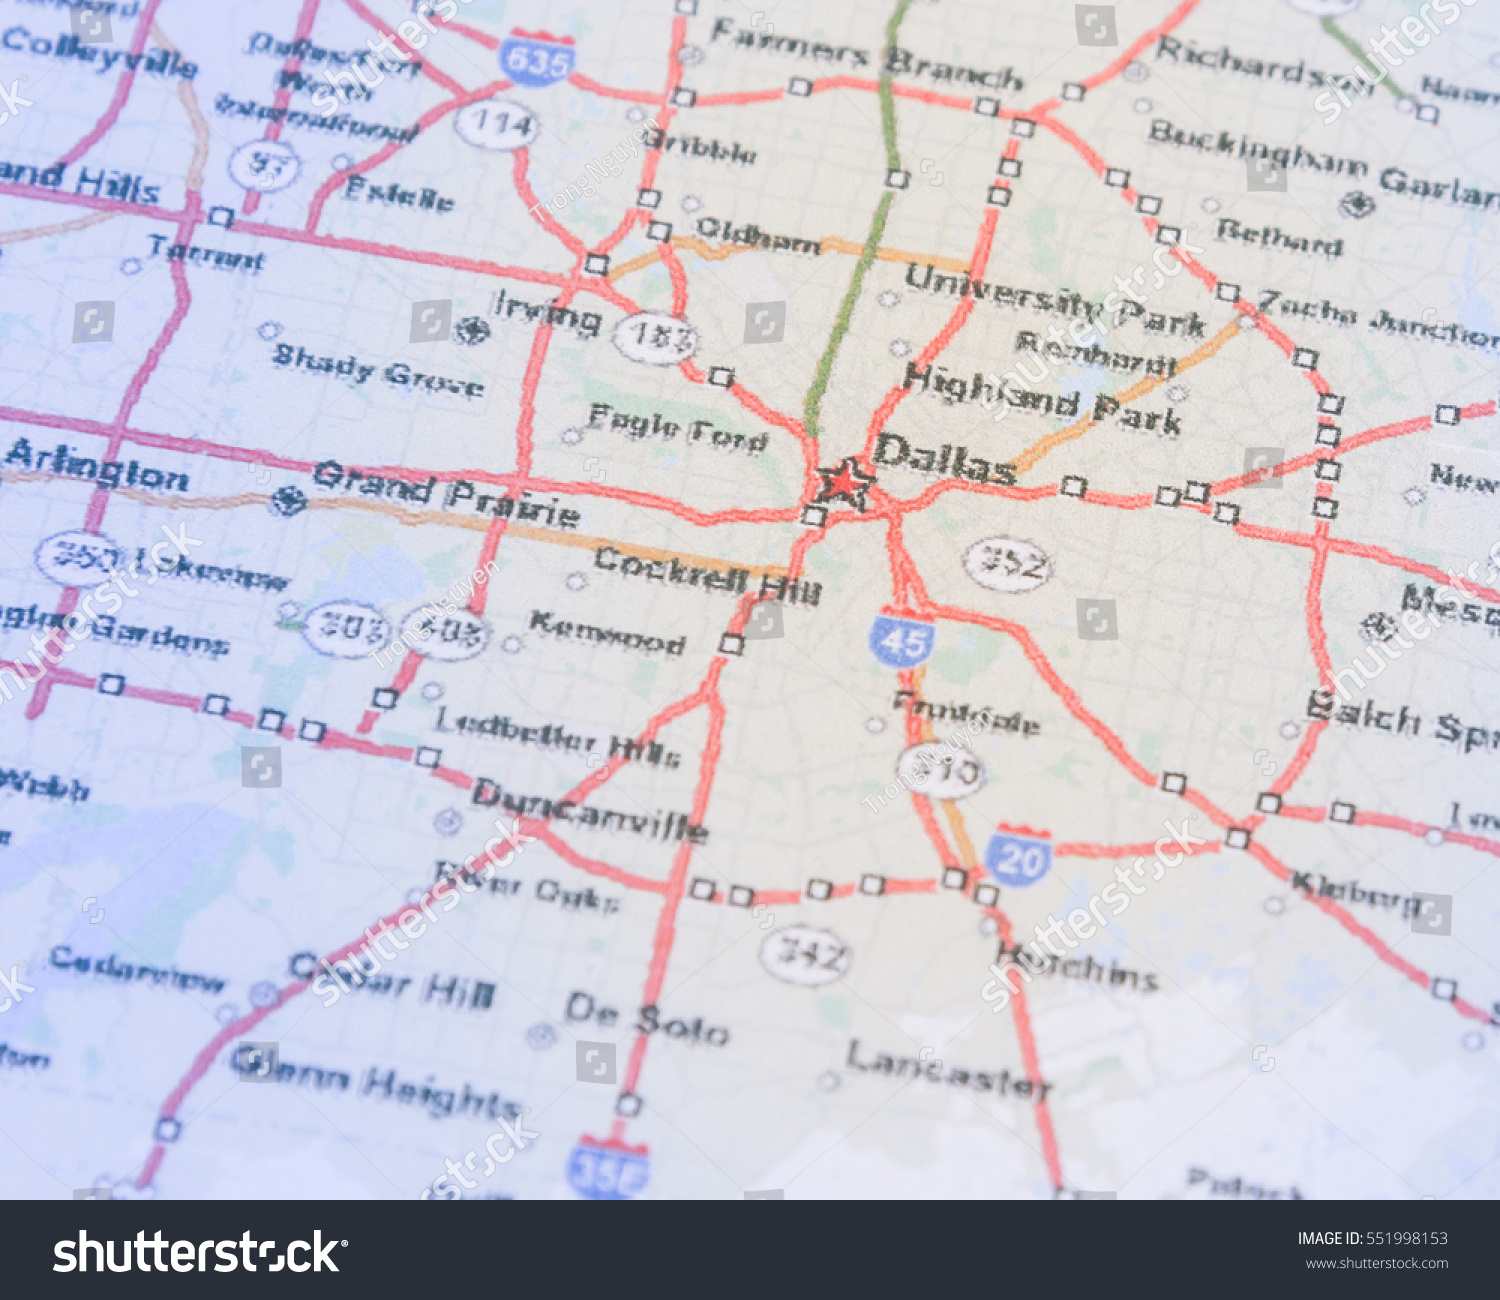 Map Of North Texas Cities.Dallas On A Map Of Texas